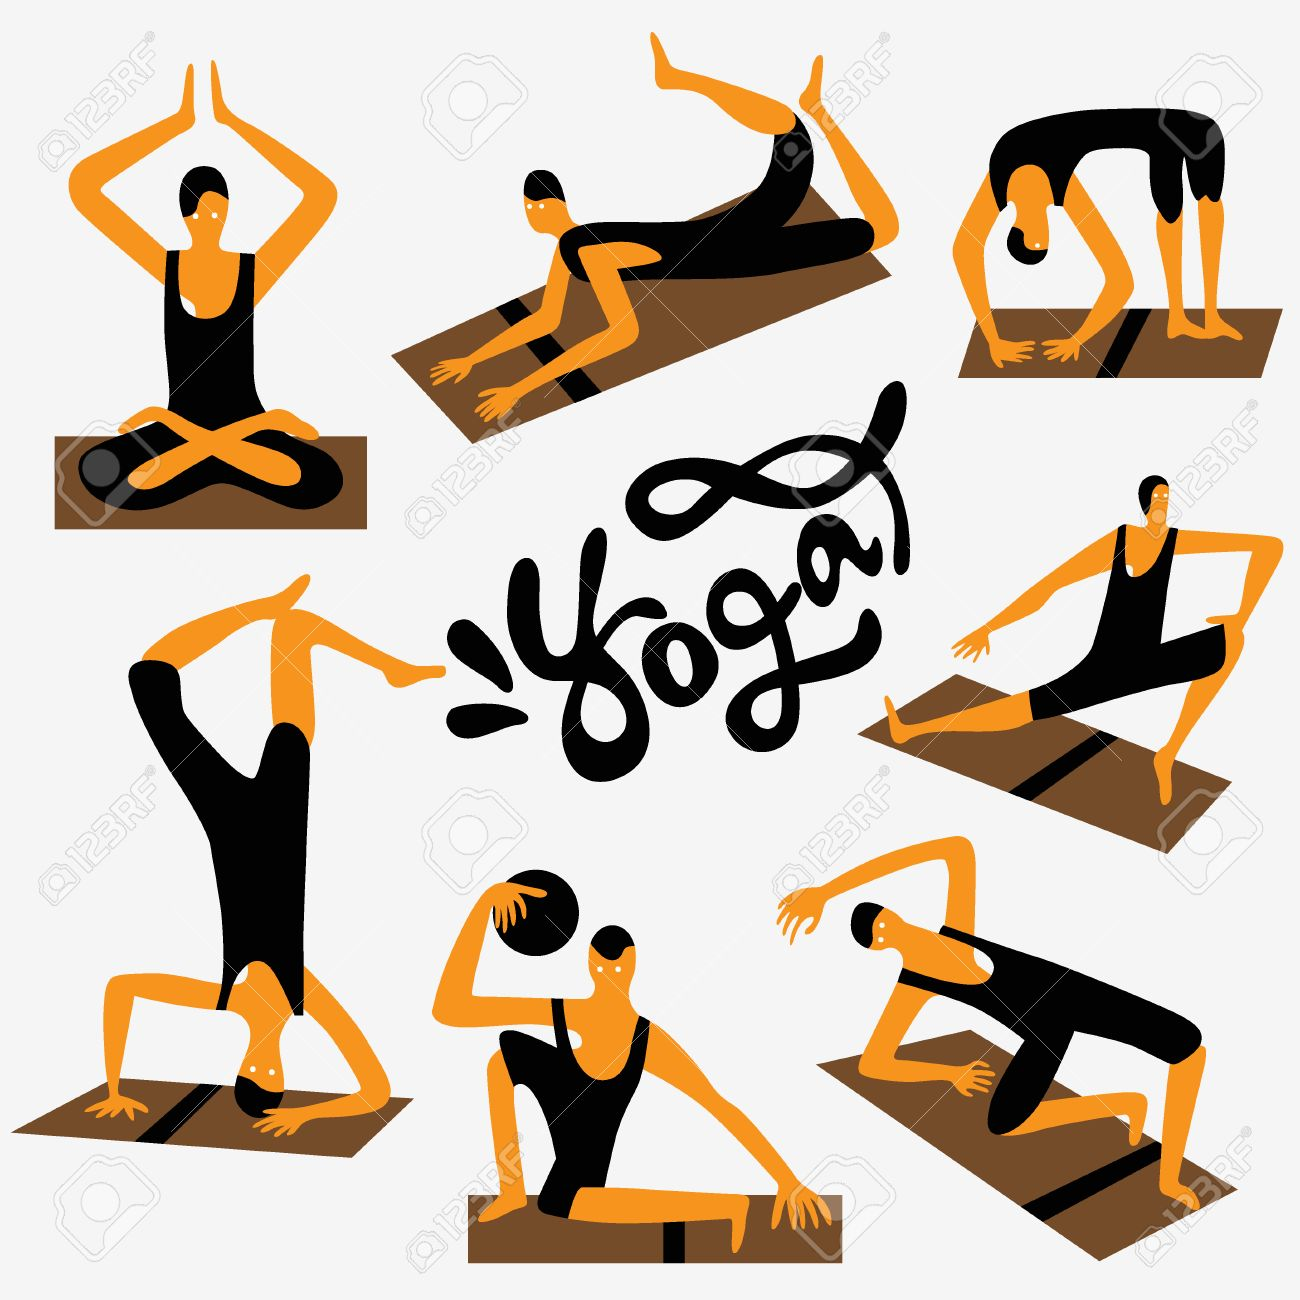 Yoga Character Set Vector Cartoons Design Elements Royalty Free Cliparts Vectors And Stock Illustration Image 42155299